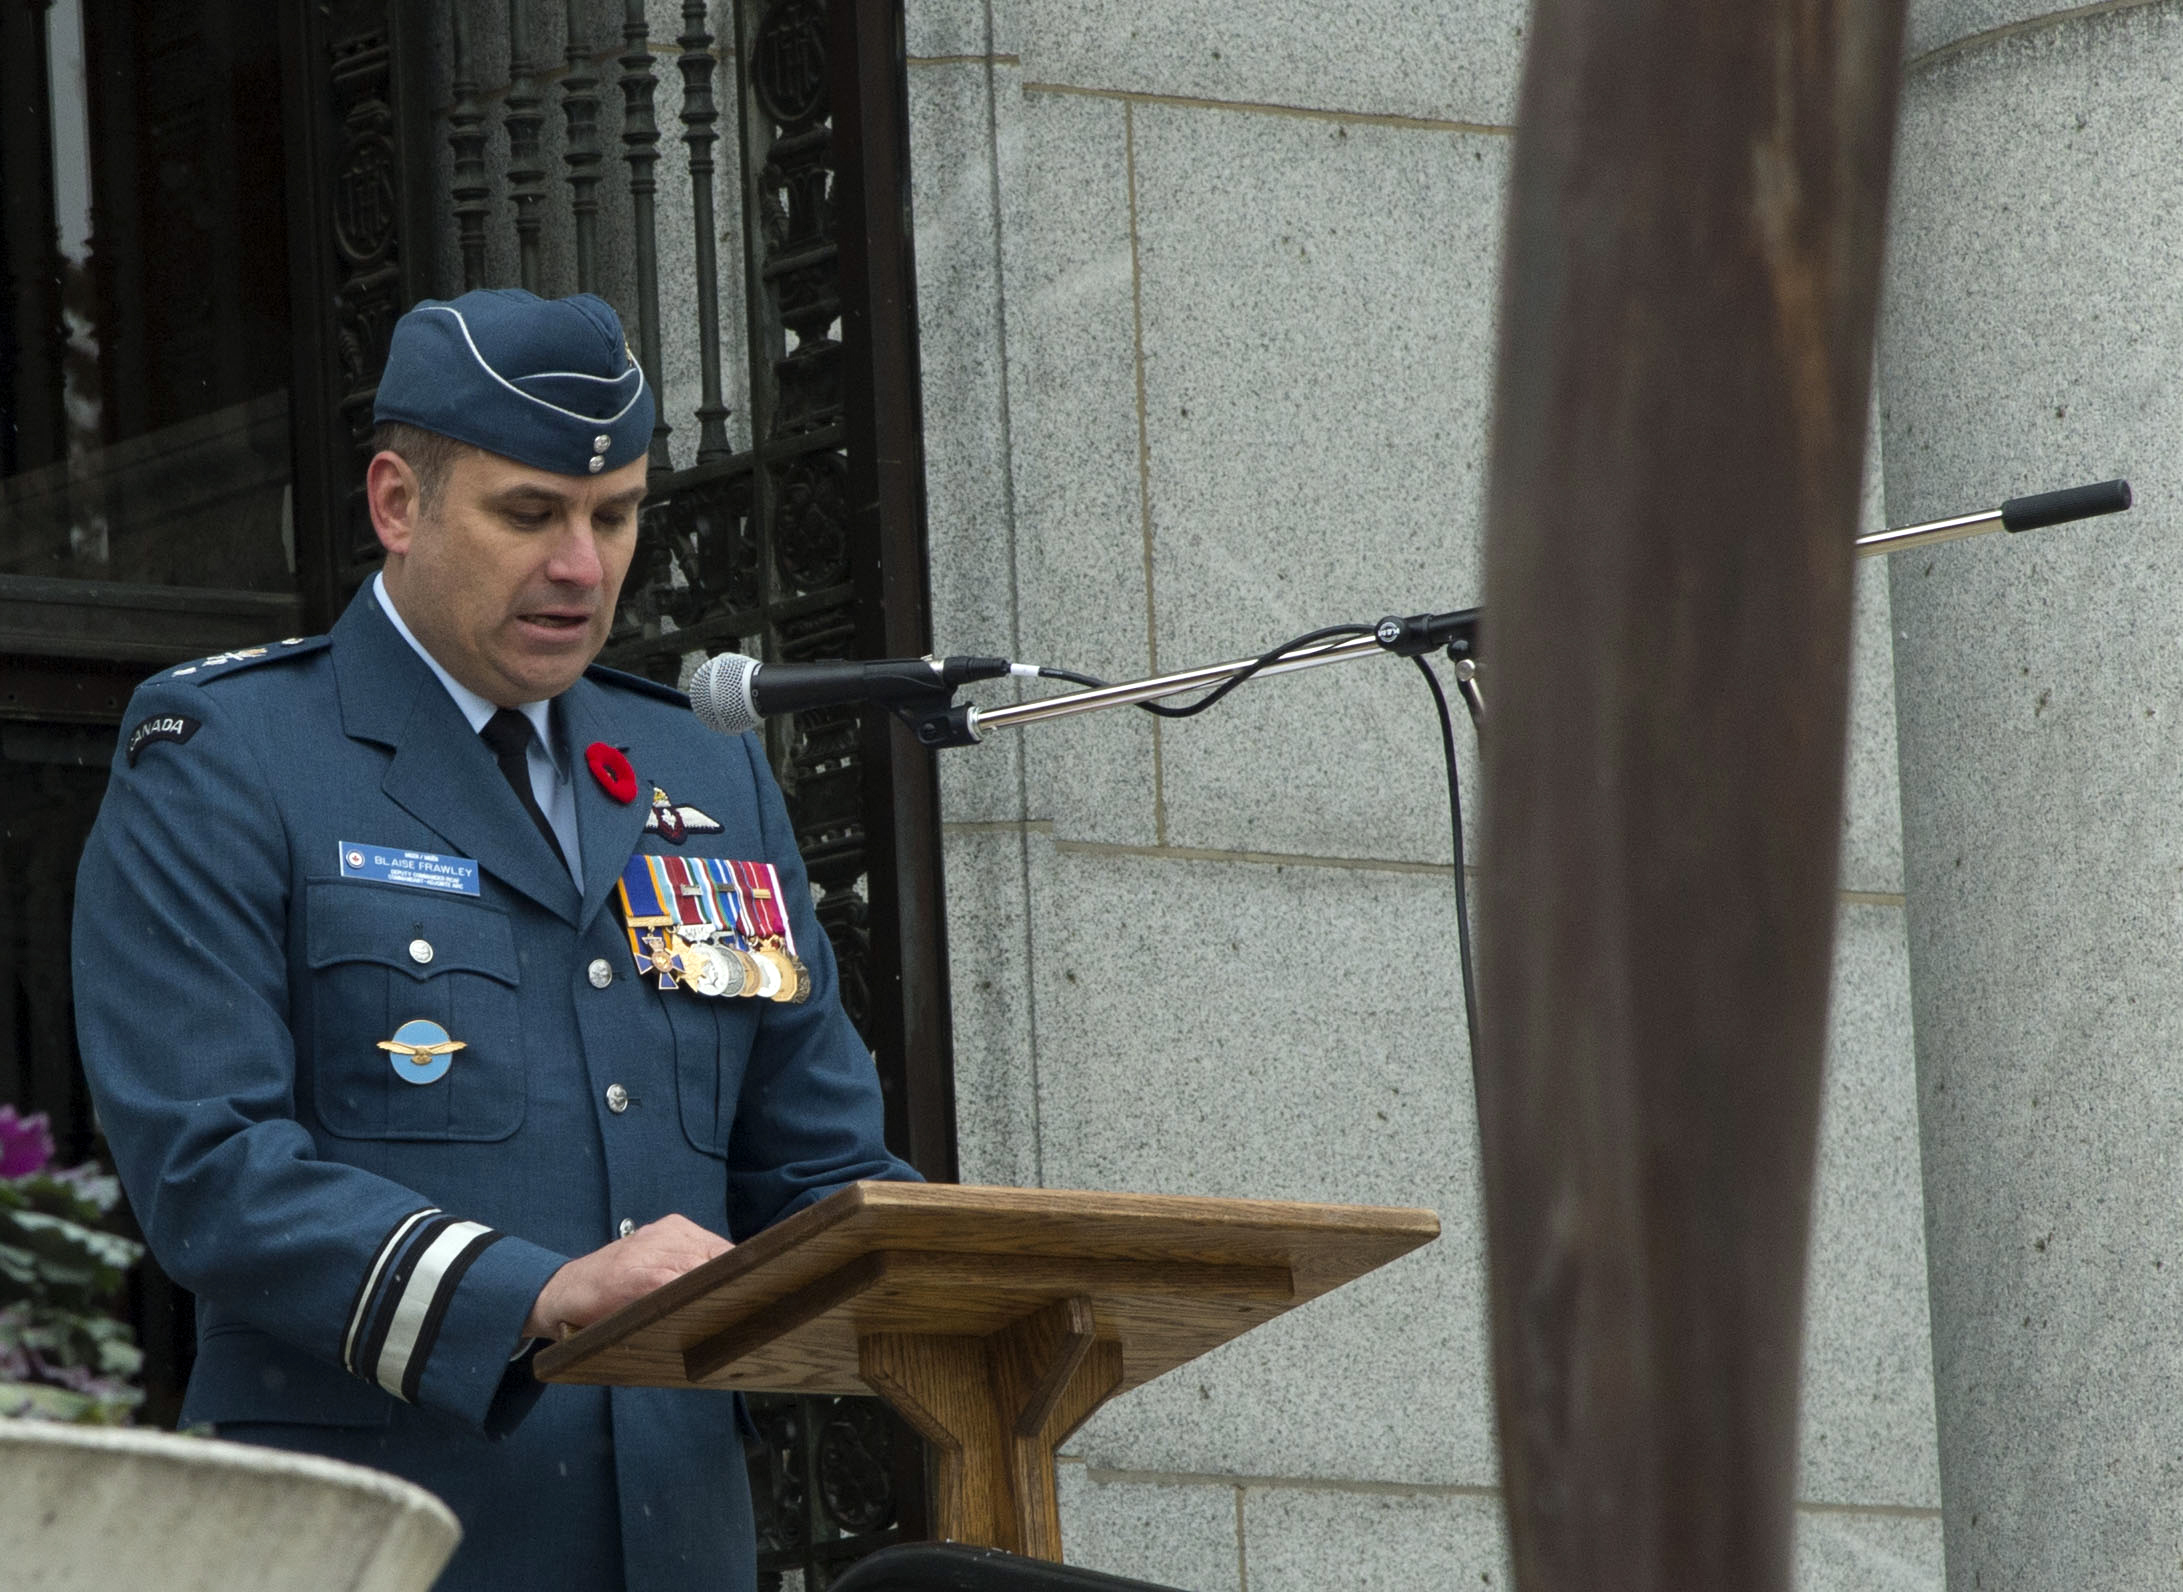 Major-General Blaise Frawley, deputy commander of the Royal Canadian Air Force, speaks during the Royal Canadian Air Force Remembrance Day ceremony at the Lieutenant-Colonel William Barker, VC memorial in Mount Pleasant Cemetery in Toronto on November 11, 2017. PHOTO: Ordinary Seaman Larissa De Guzman, BM05-2017-0381-11